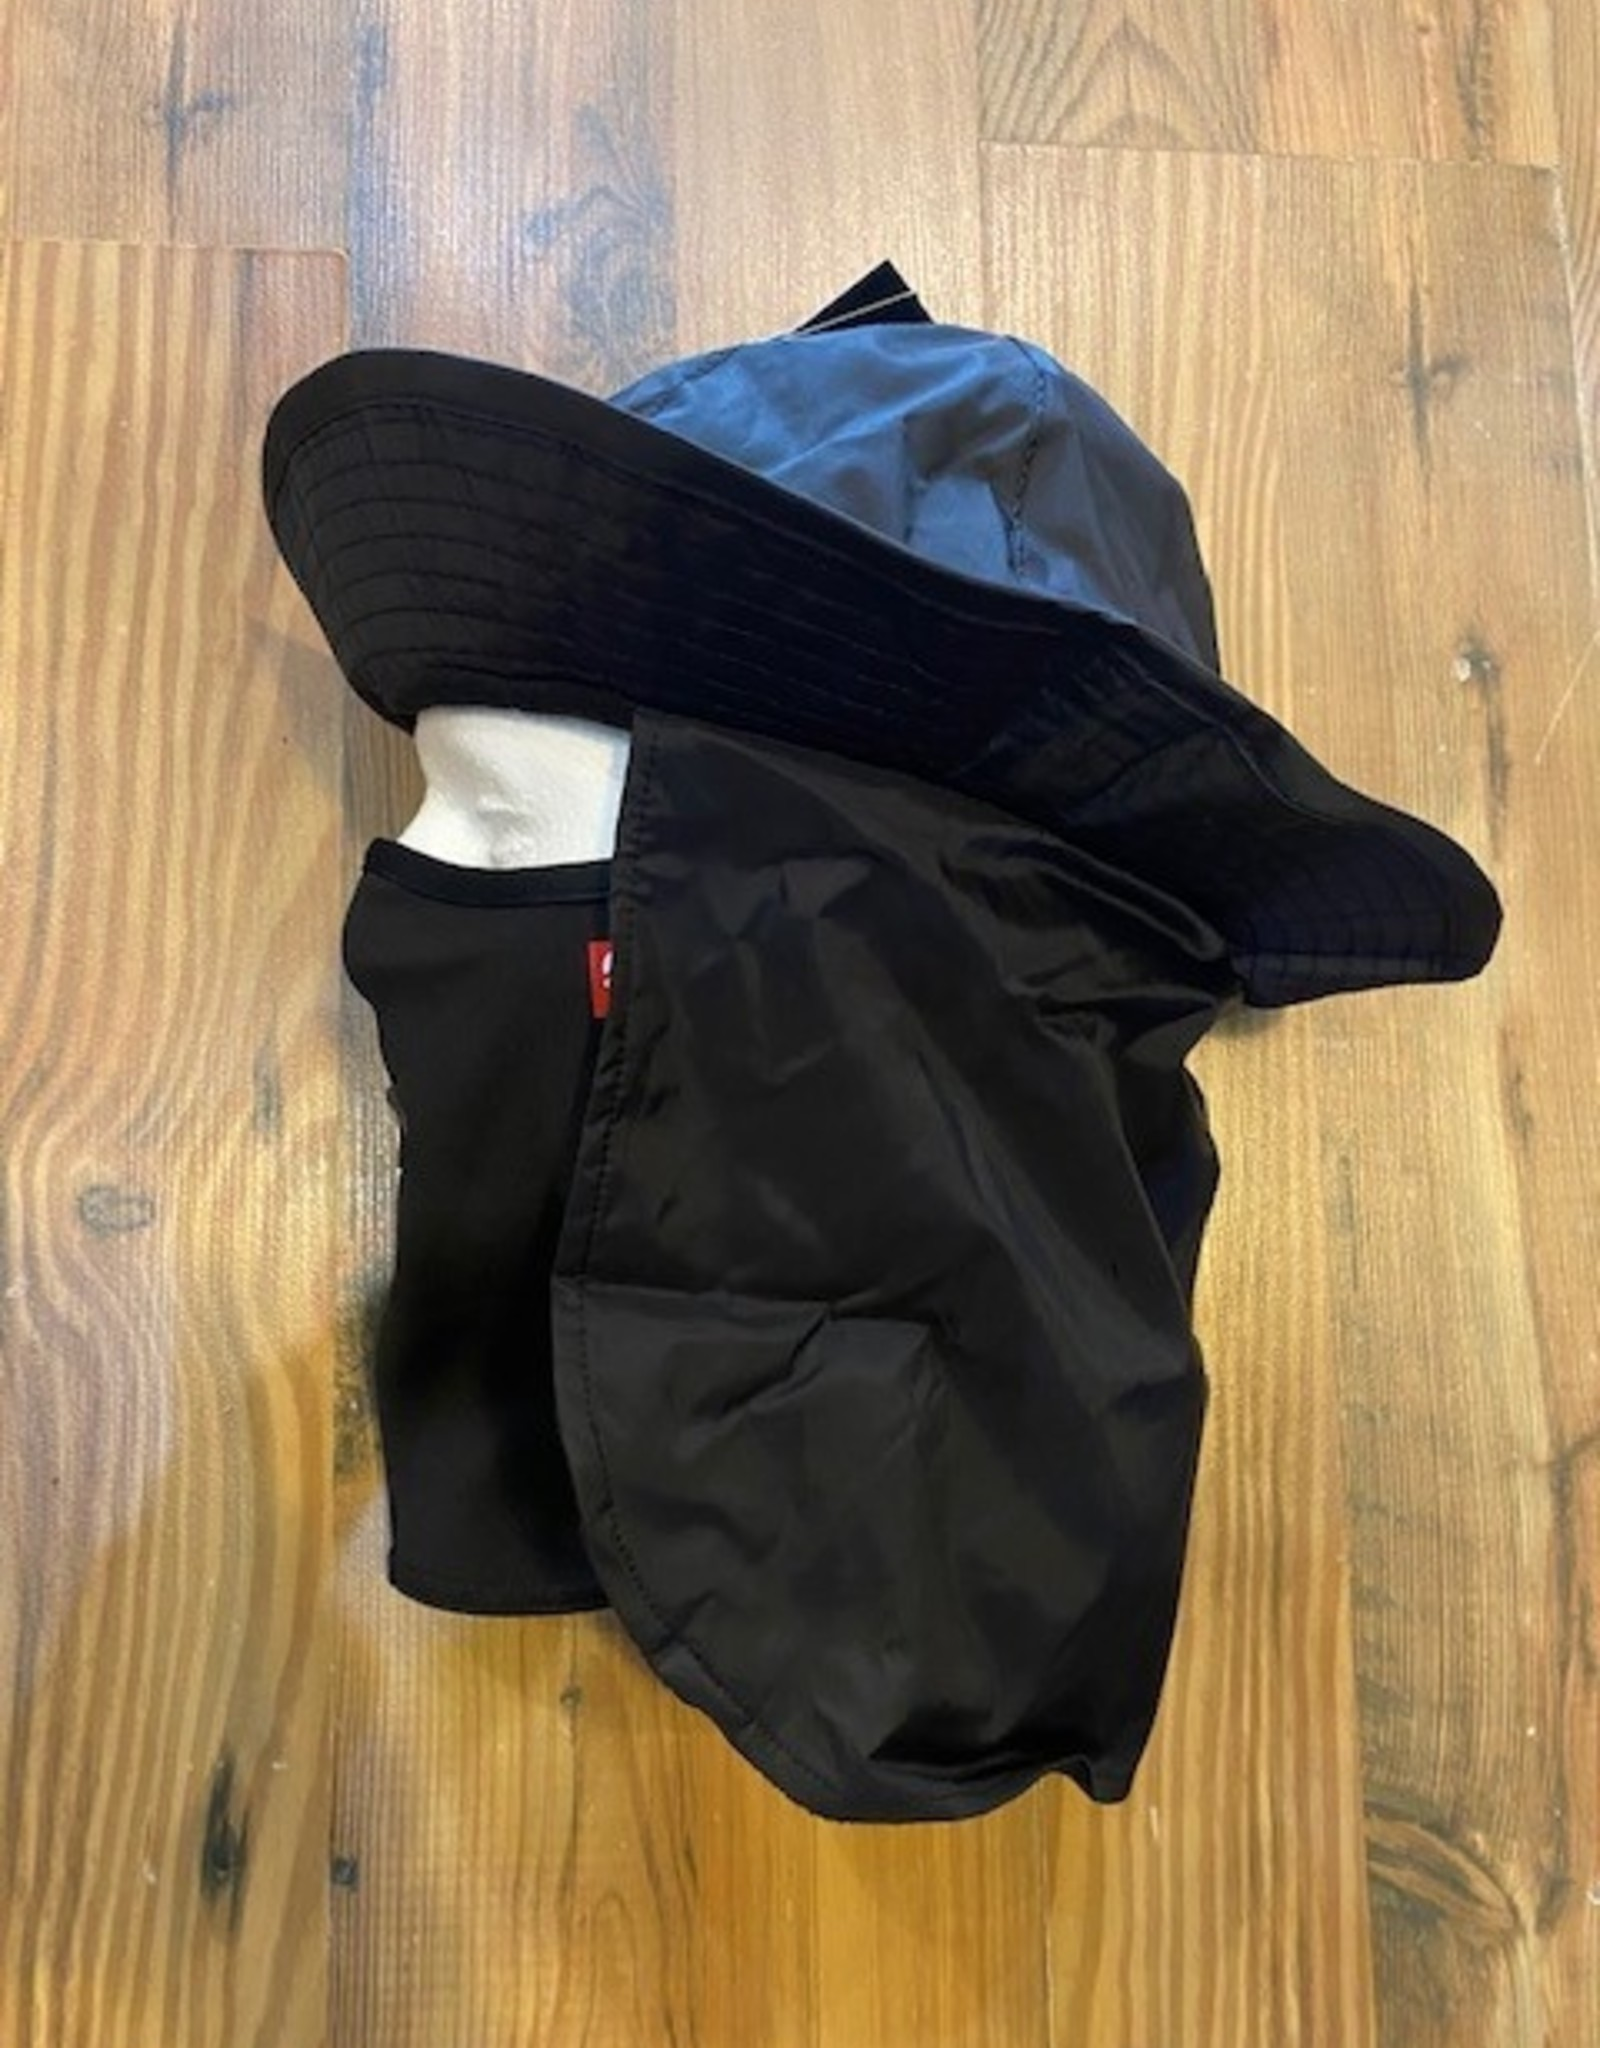 AIRHOLE AIRHOLE BUCKET TECH HAT/FACEMASK BLACK